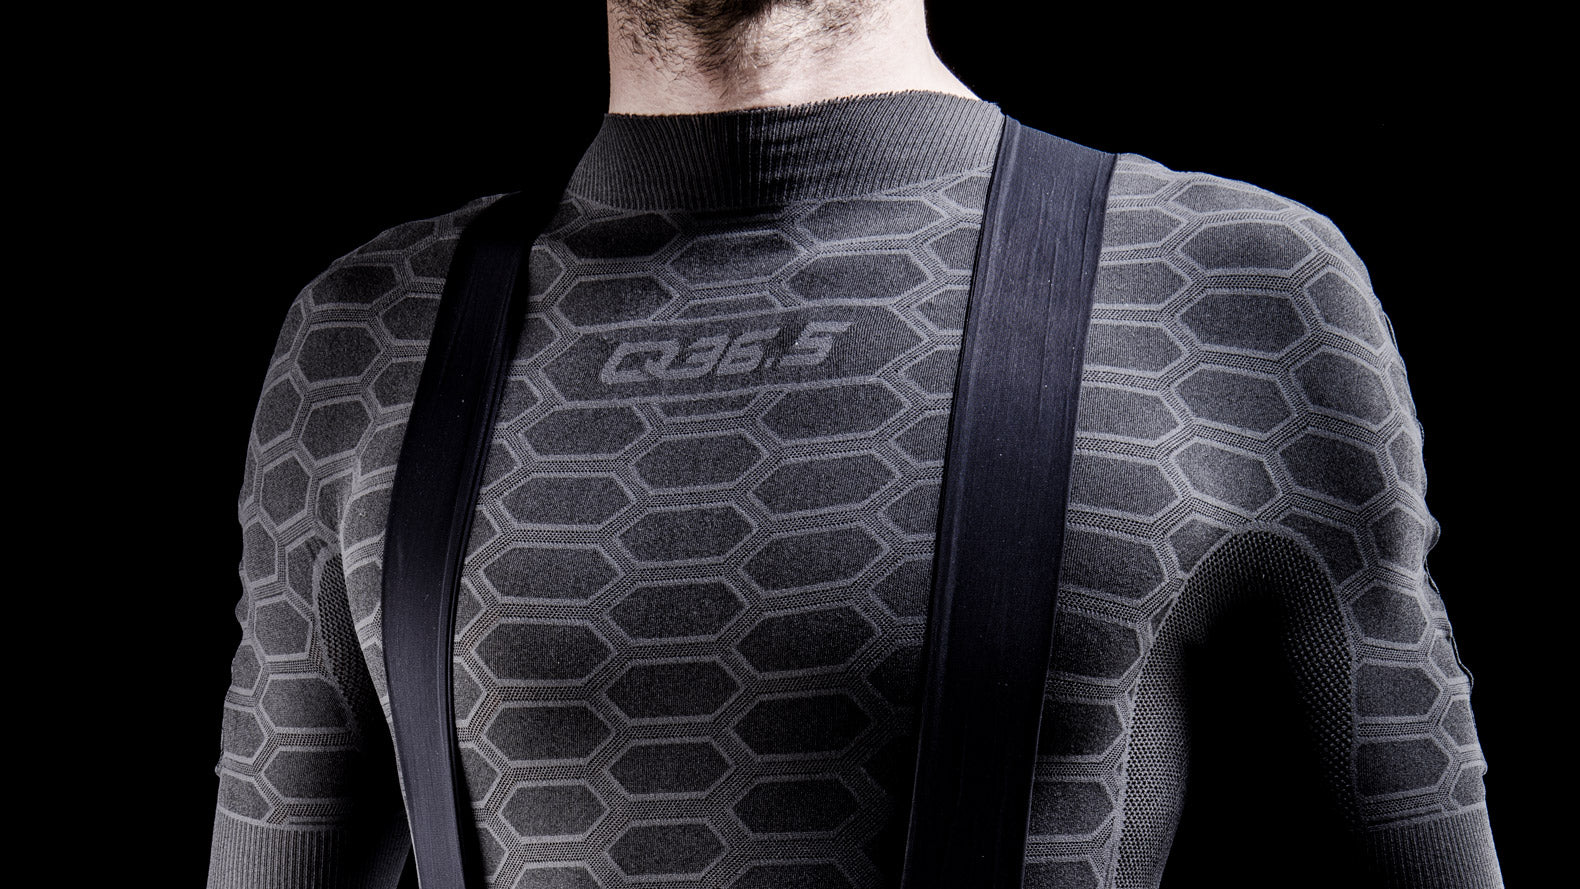 Q36.5 Long Sleeve Cycling Baselayer 3 in Anthracite Black for cold weather riding condtions.